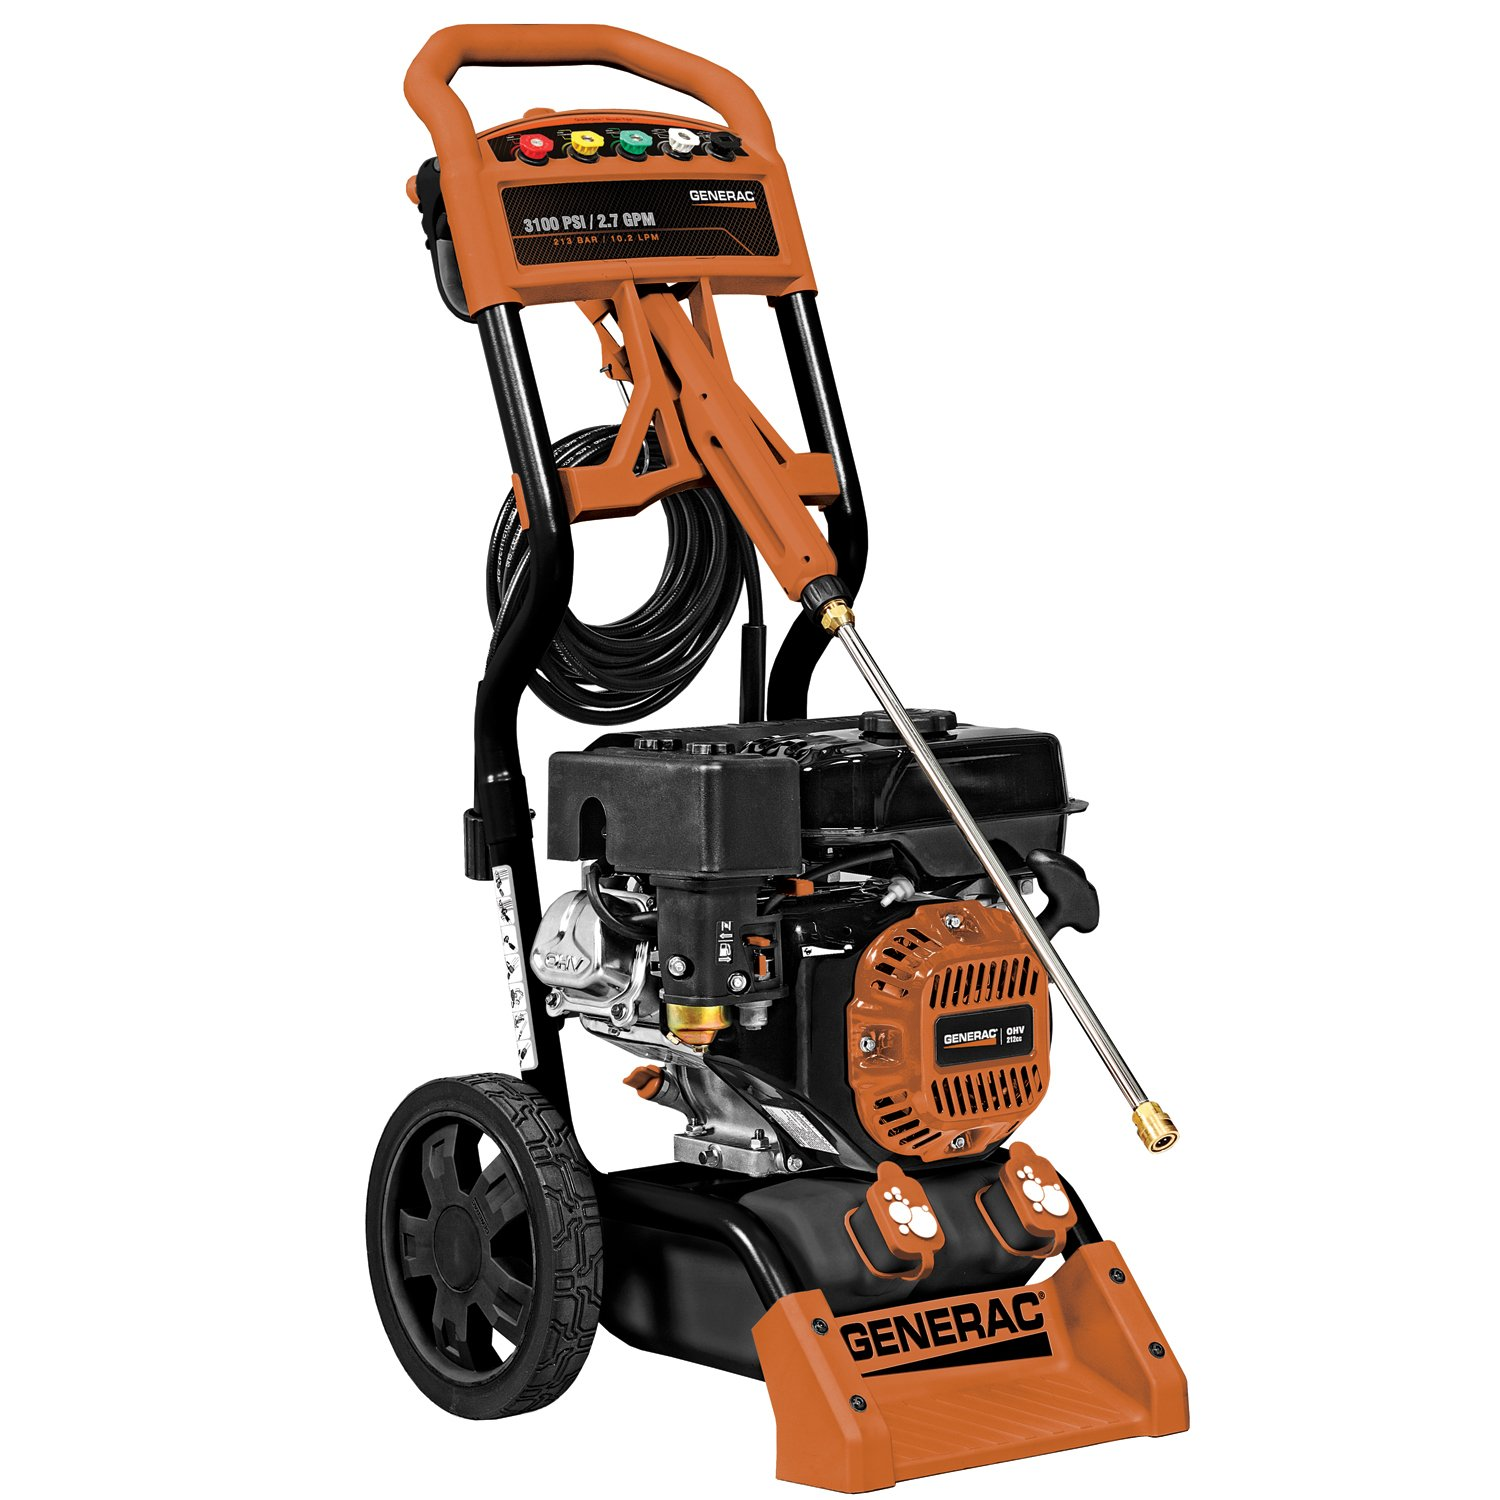 Amazon.com : Generac 6598 3, 100 PSI 2.7 GPM 212cc OHV Gas Powered  Residential Pressure Washer (Discontinued by Manufacturer) : Garden &  Outdoor